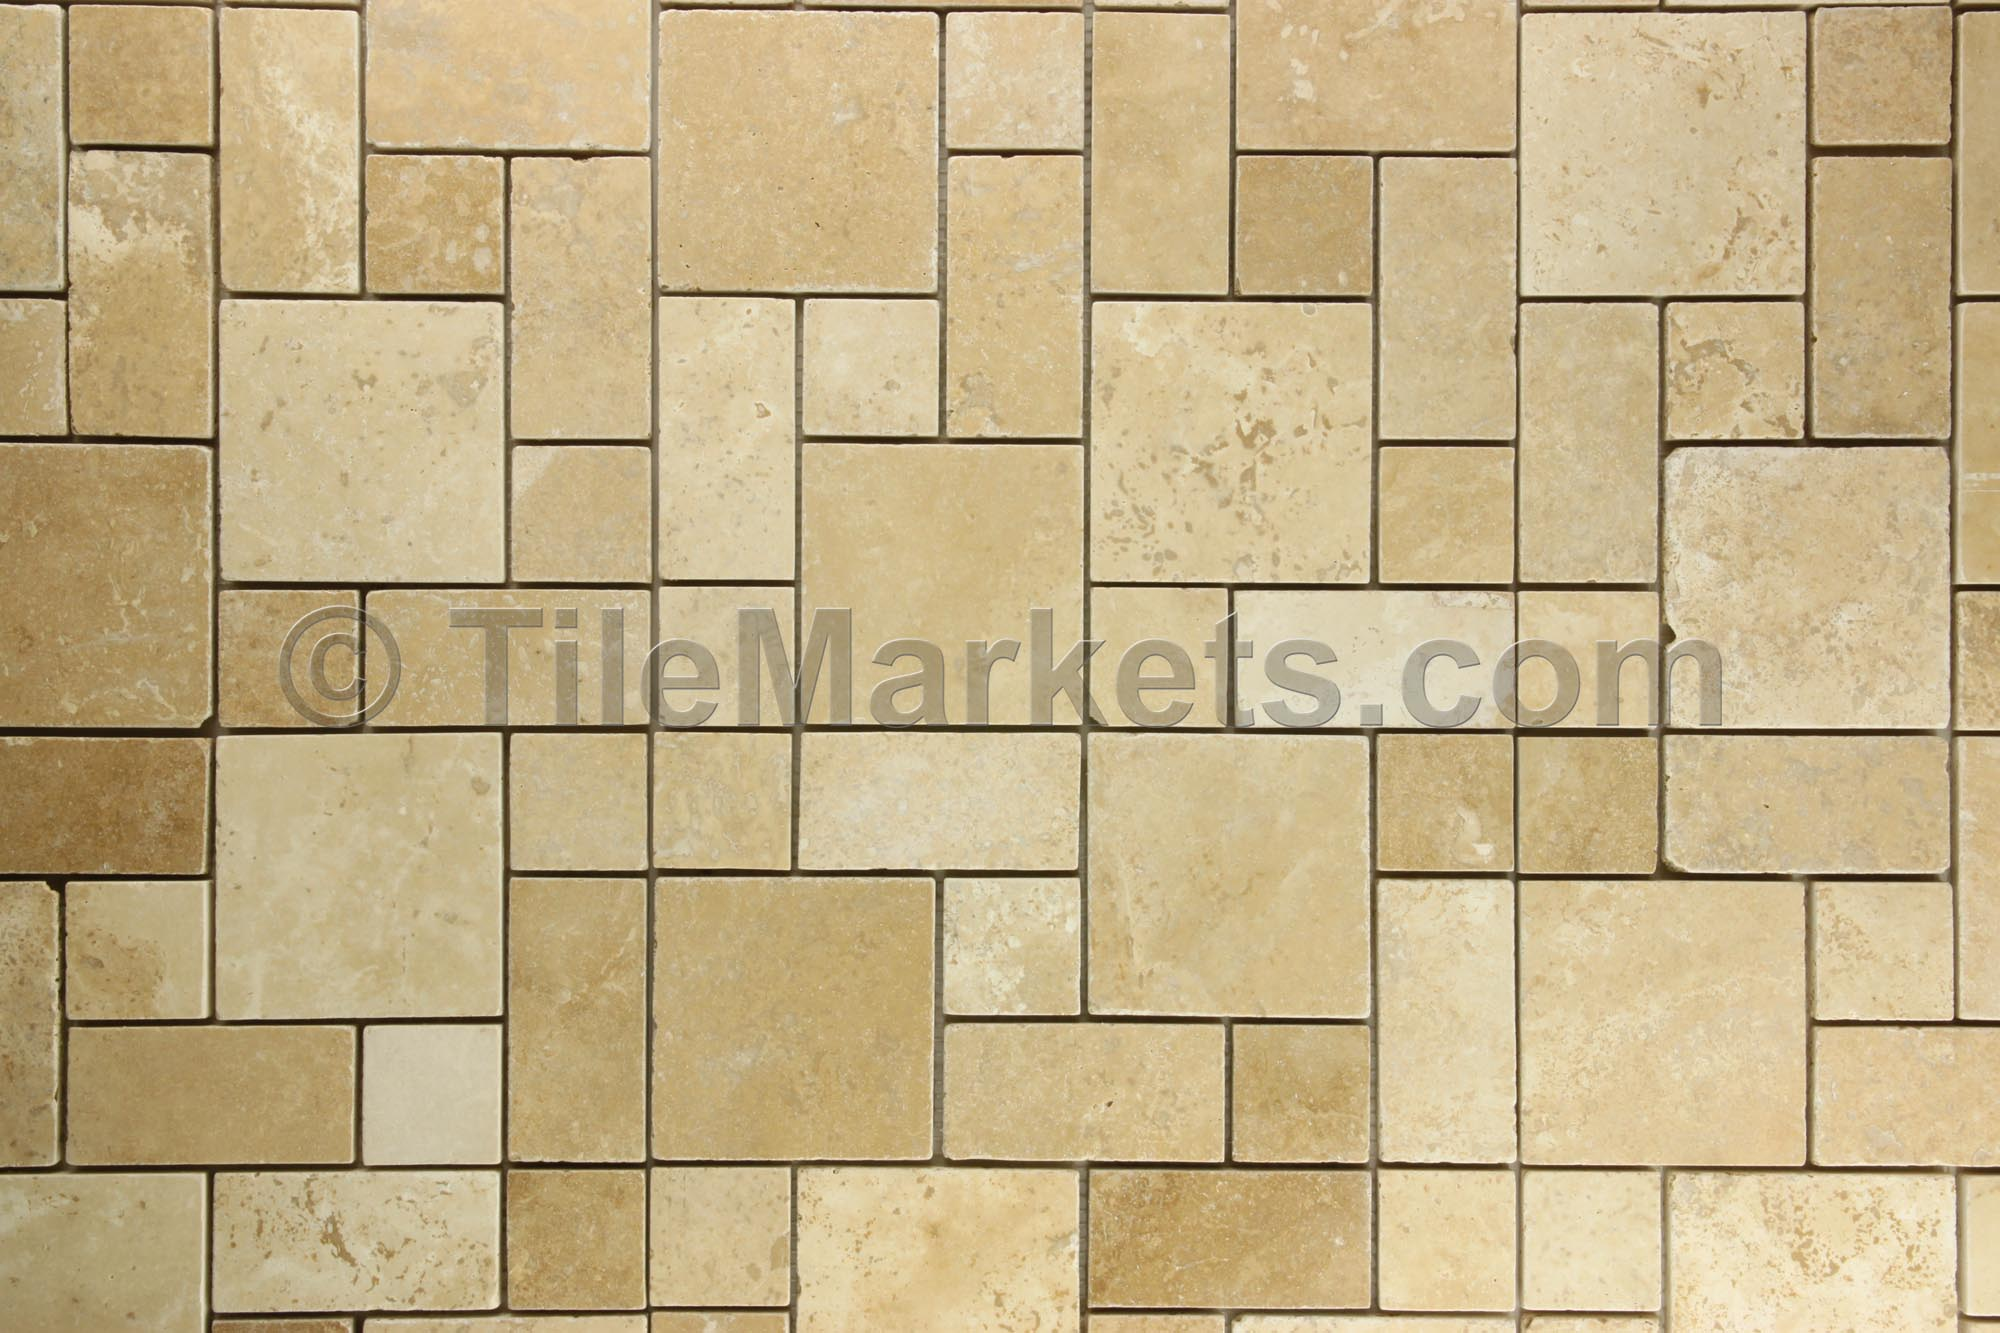 Tumbled Travertine Tilemarkets 174